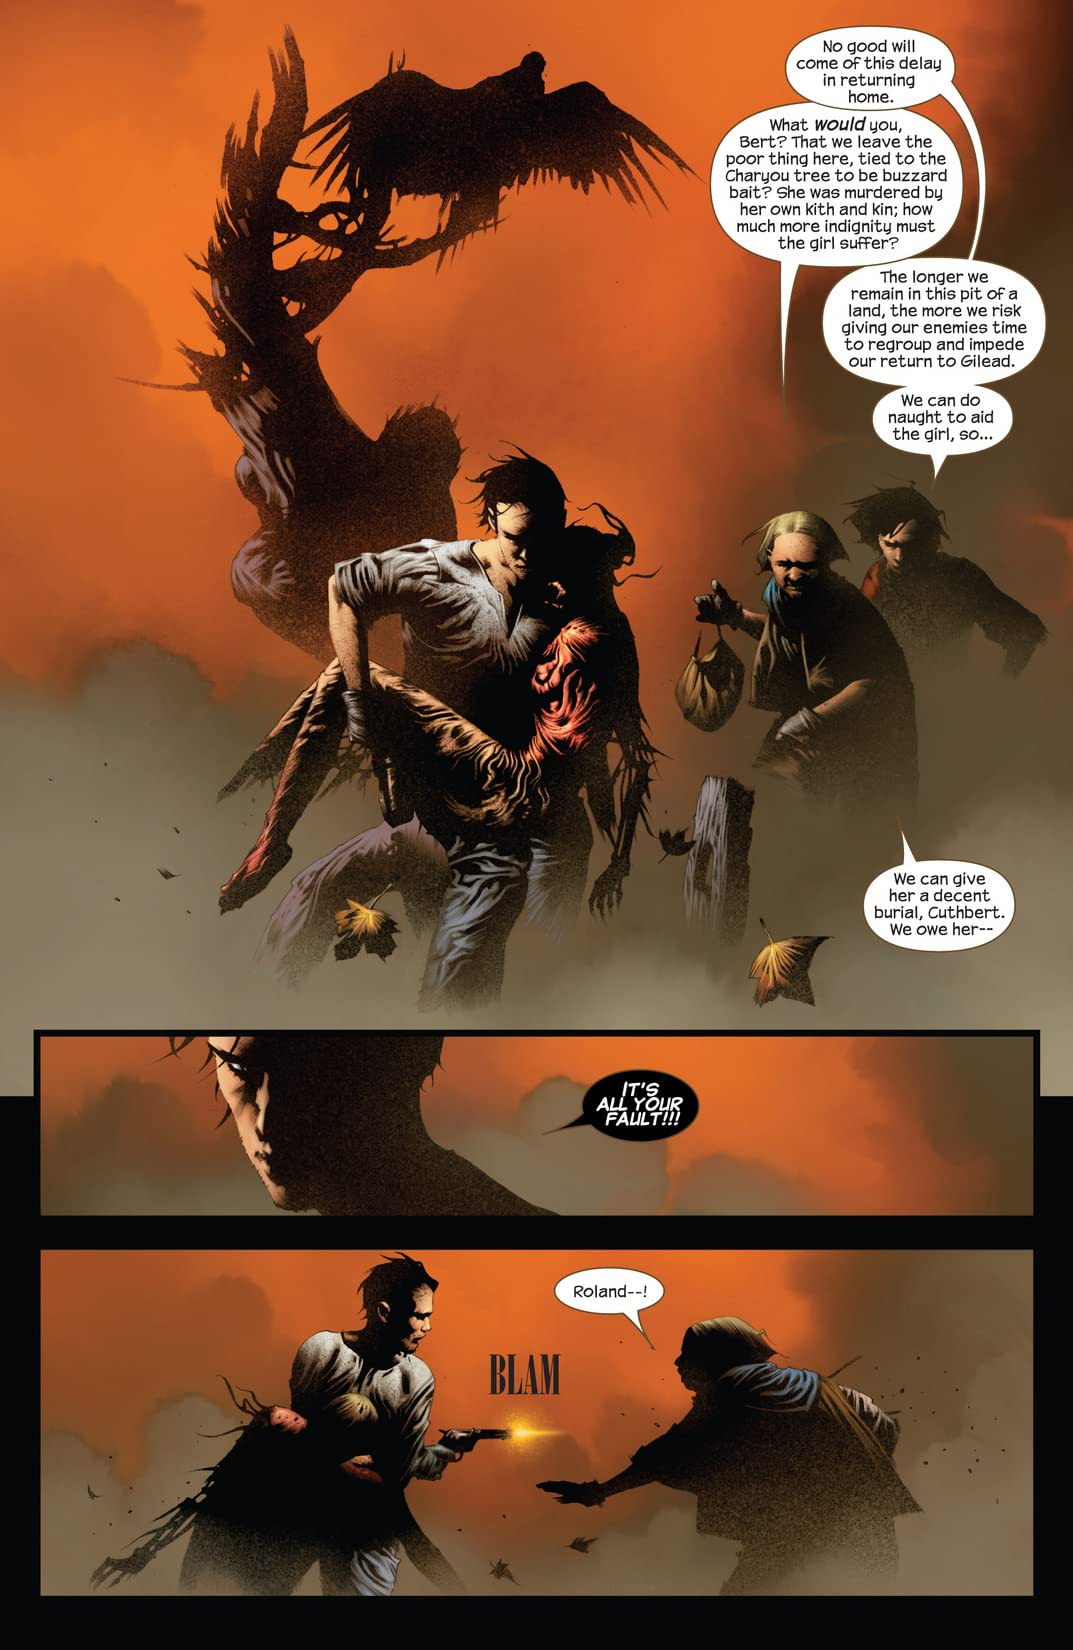 Dark Tower: The Long Road Home #1 (of 5)